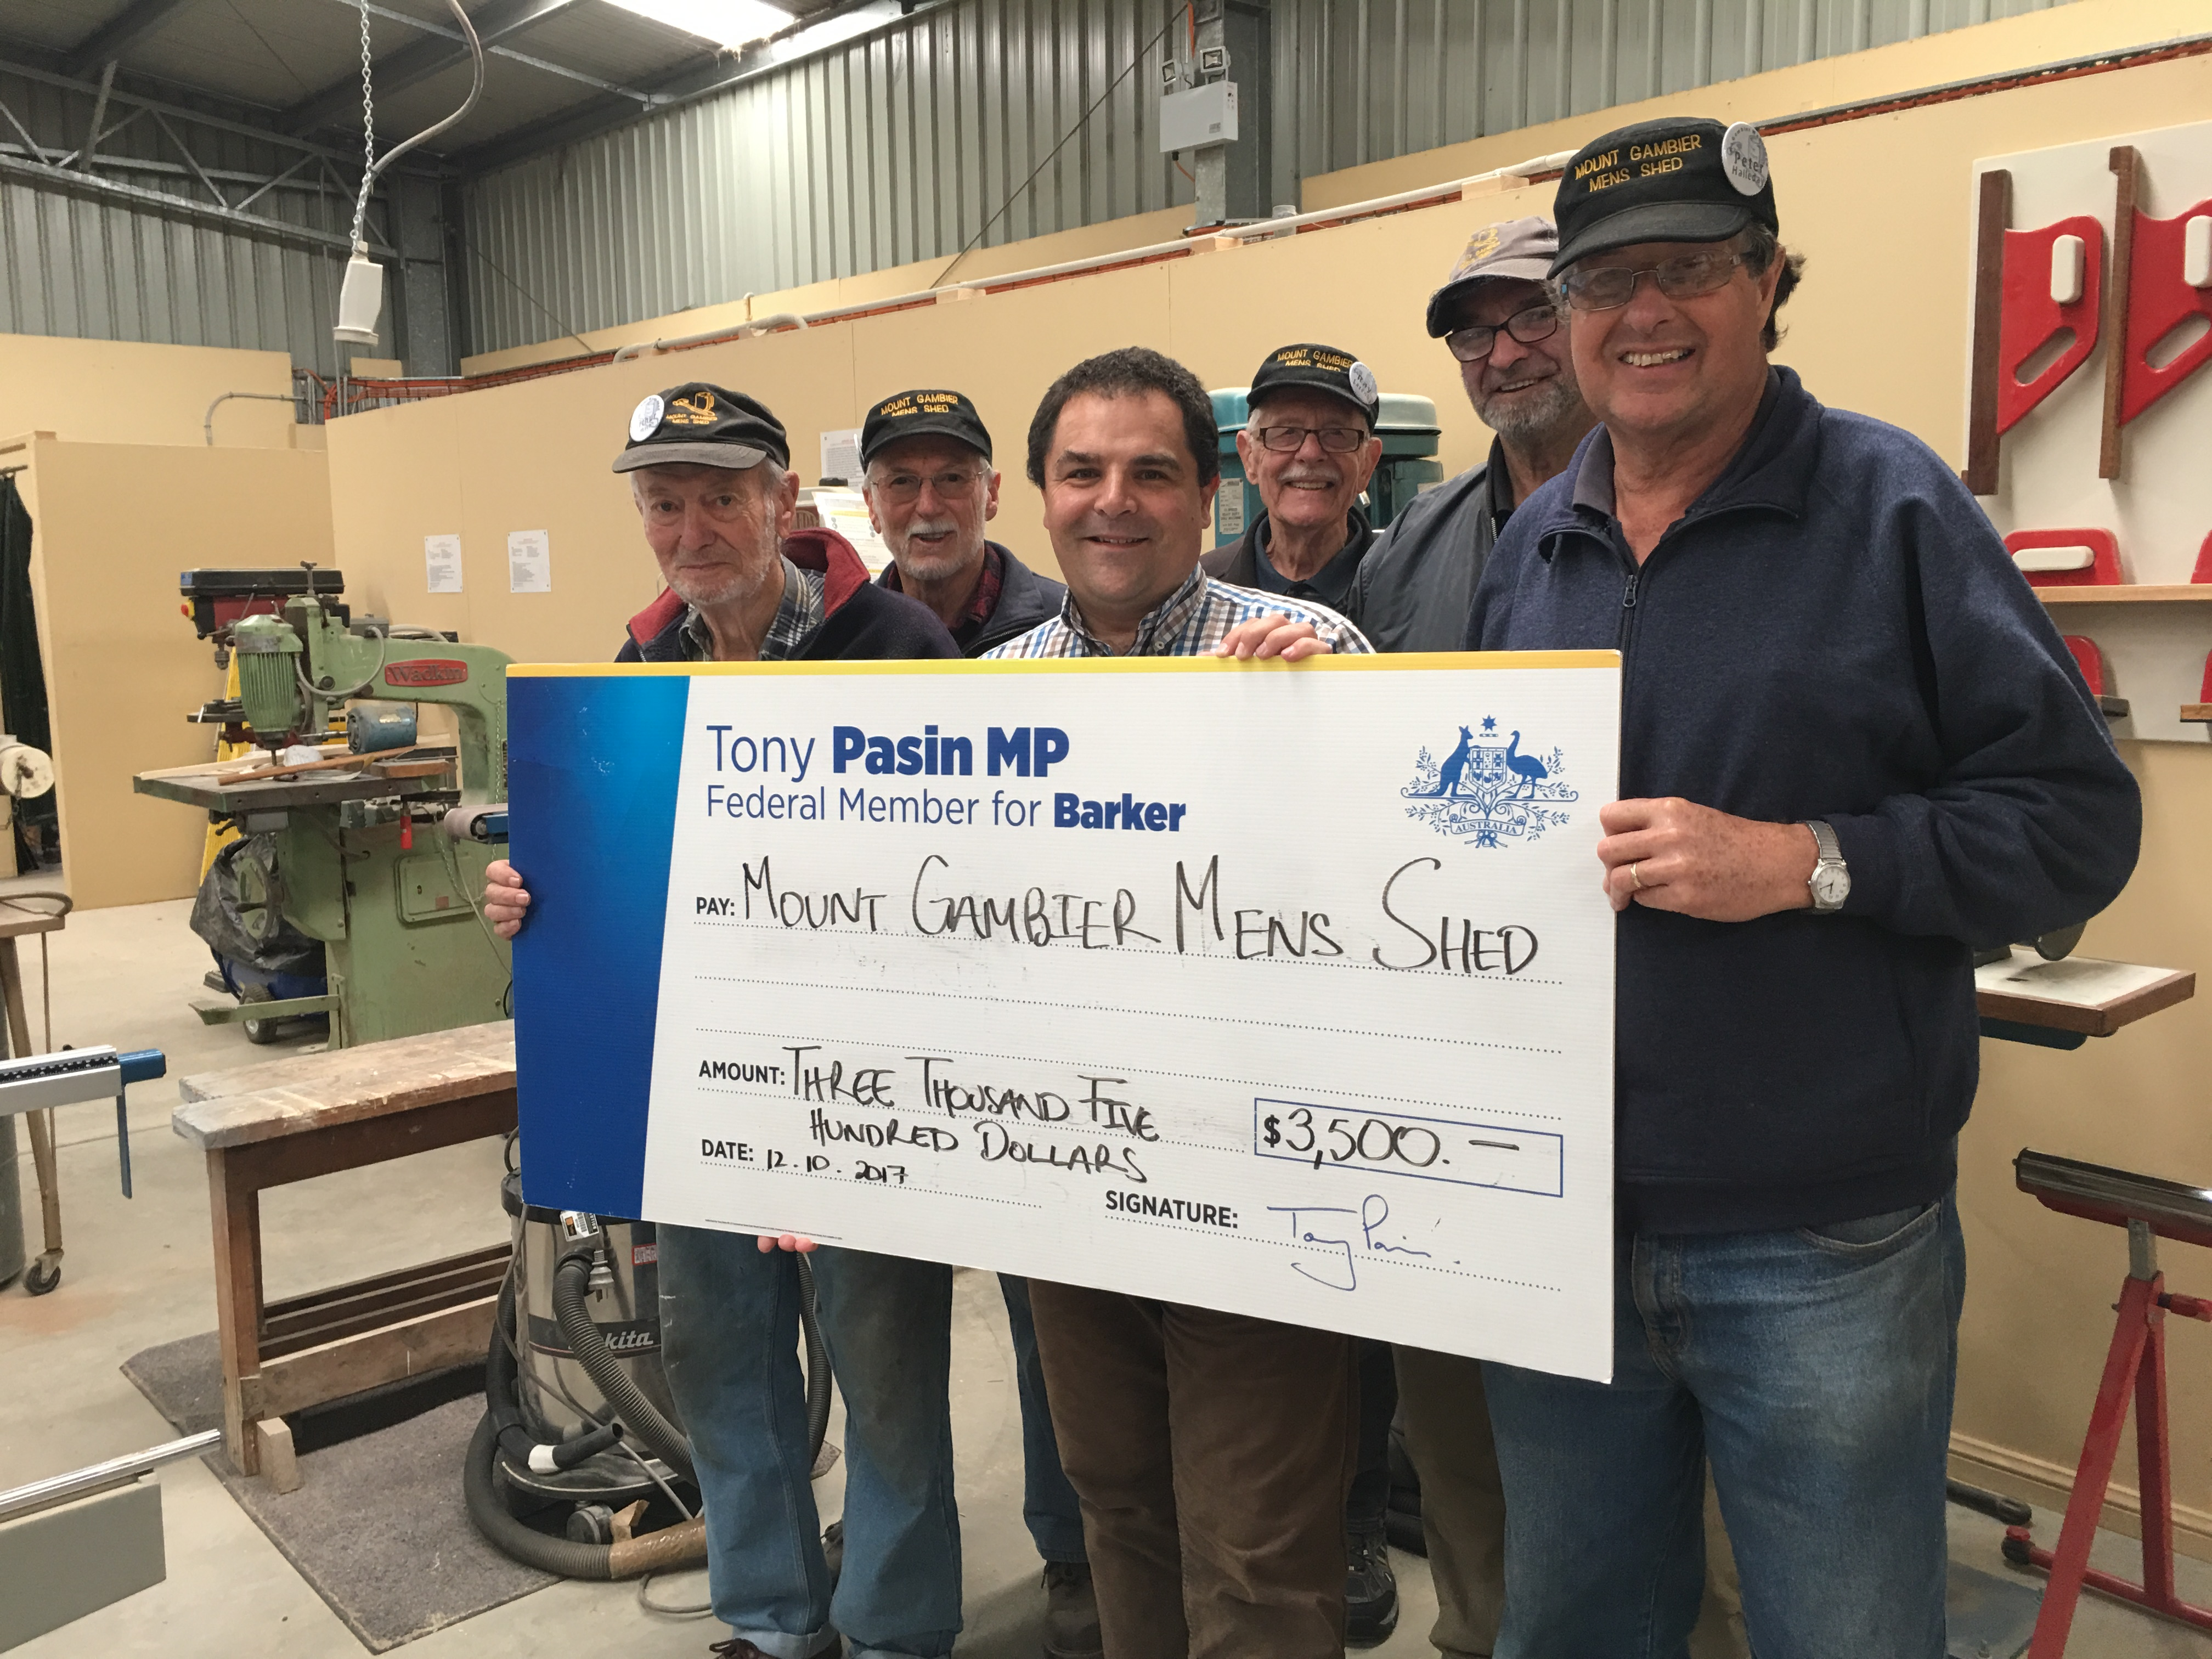 New funding grant for Mount Gambier Men's Shed